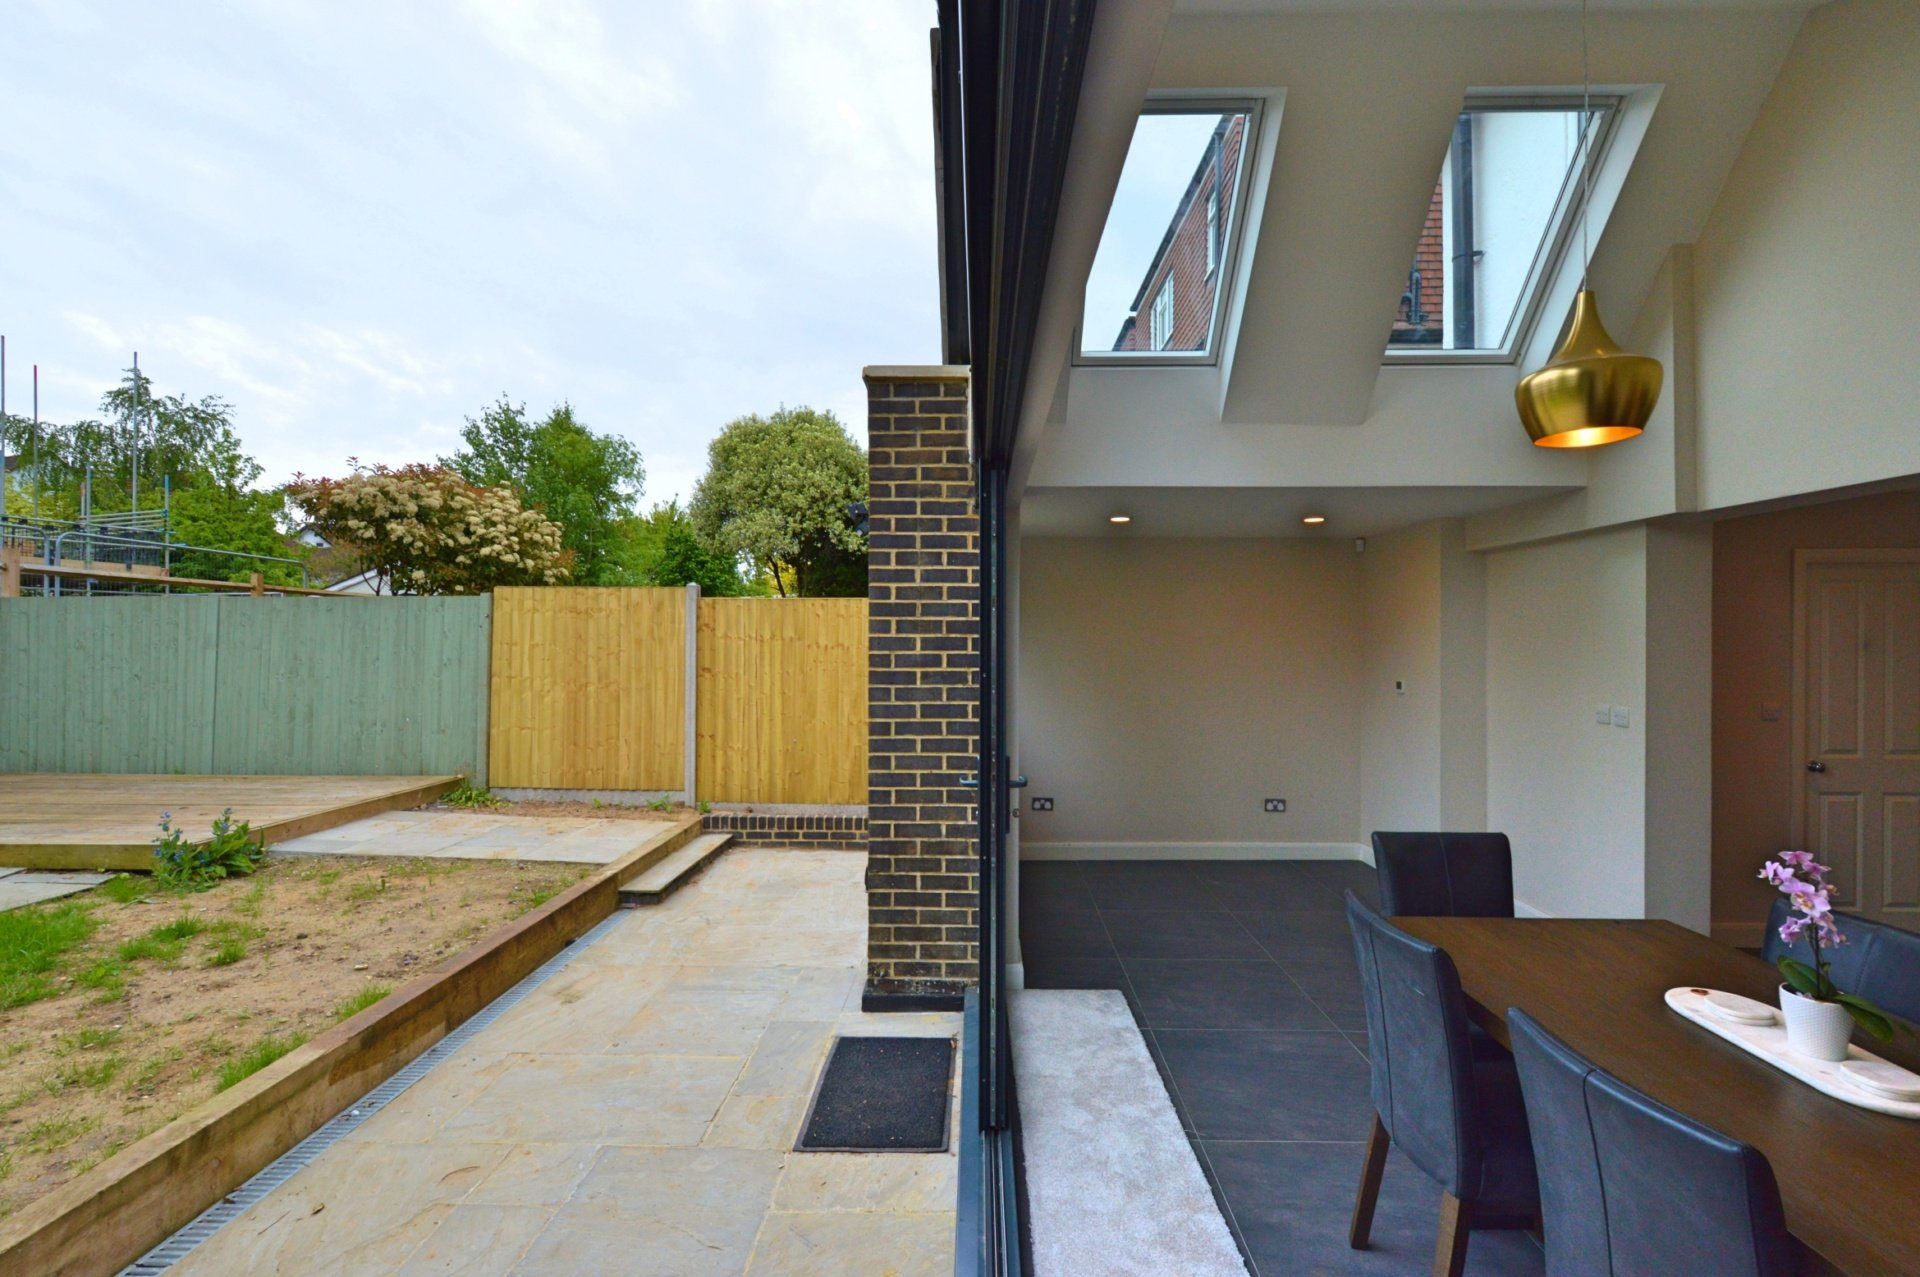 Architect designed roof and kitchen house extension Kingston KT2 Inside out Kingston KT2 | Roof and kitchen house extension